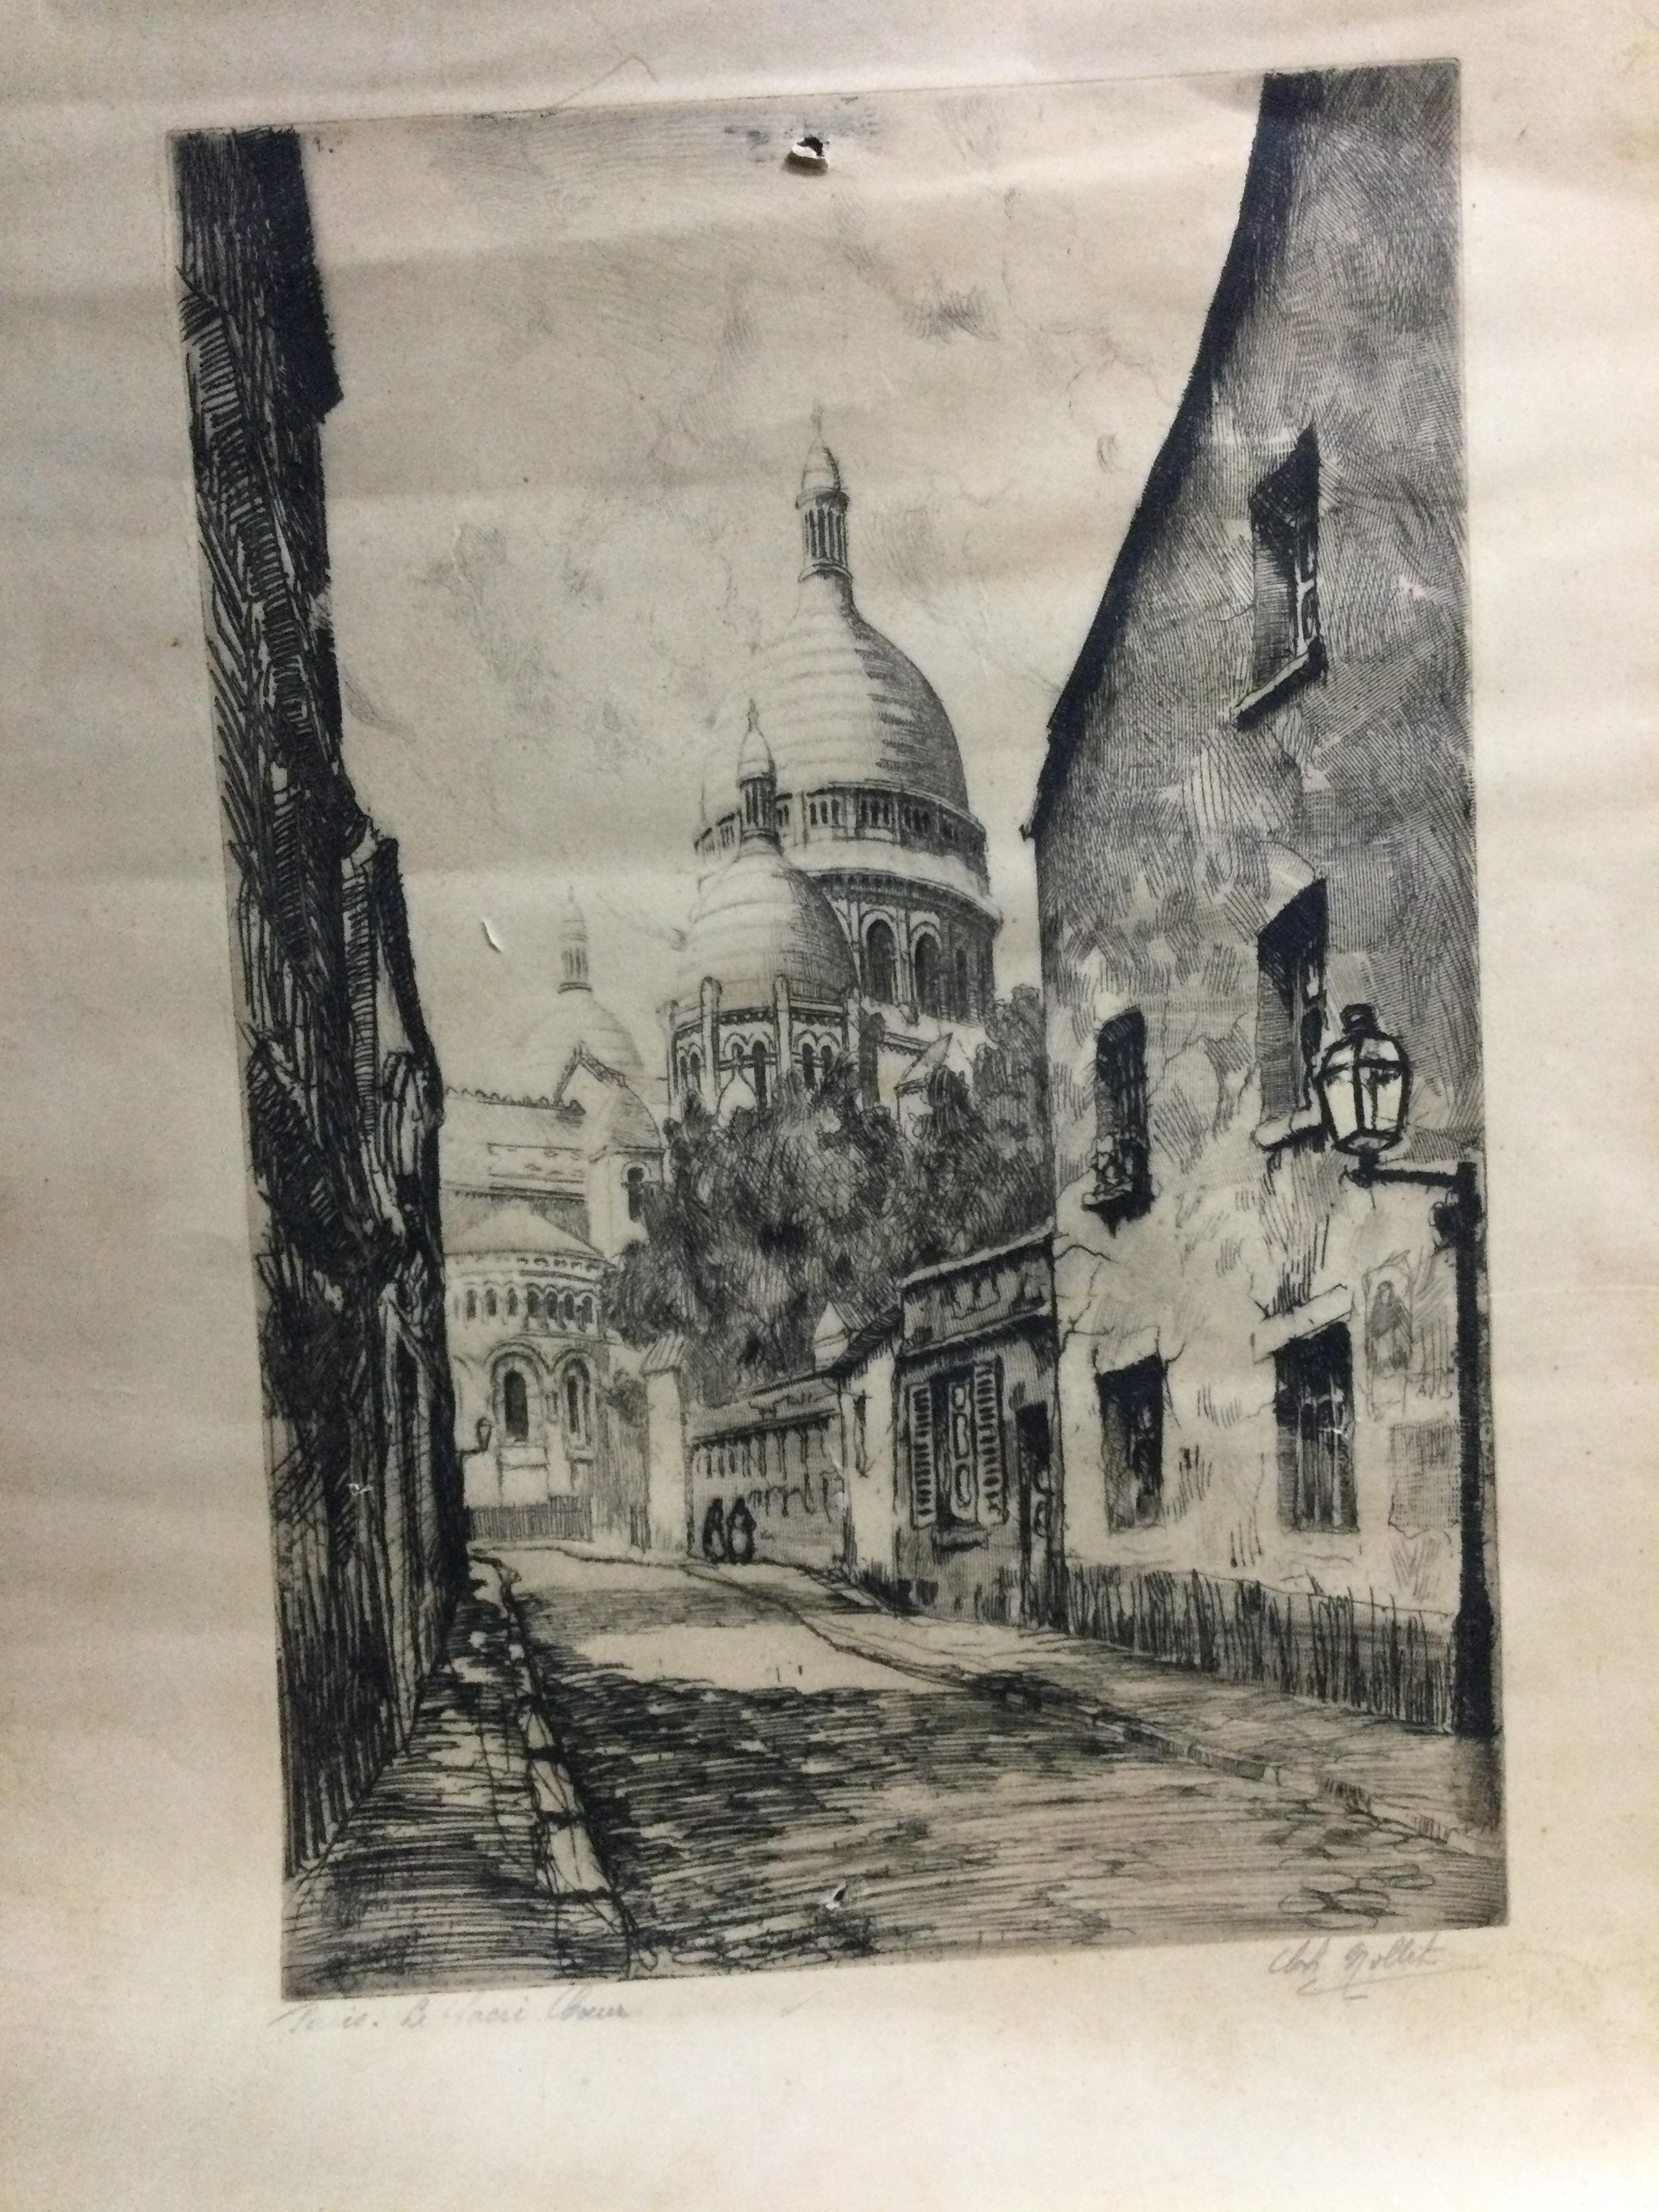 A COLLECTION OF VARIOUS ETCHINGS - Image 3 of 3